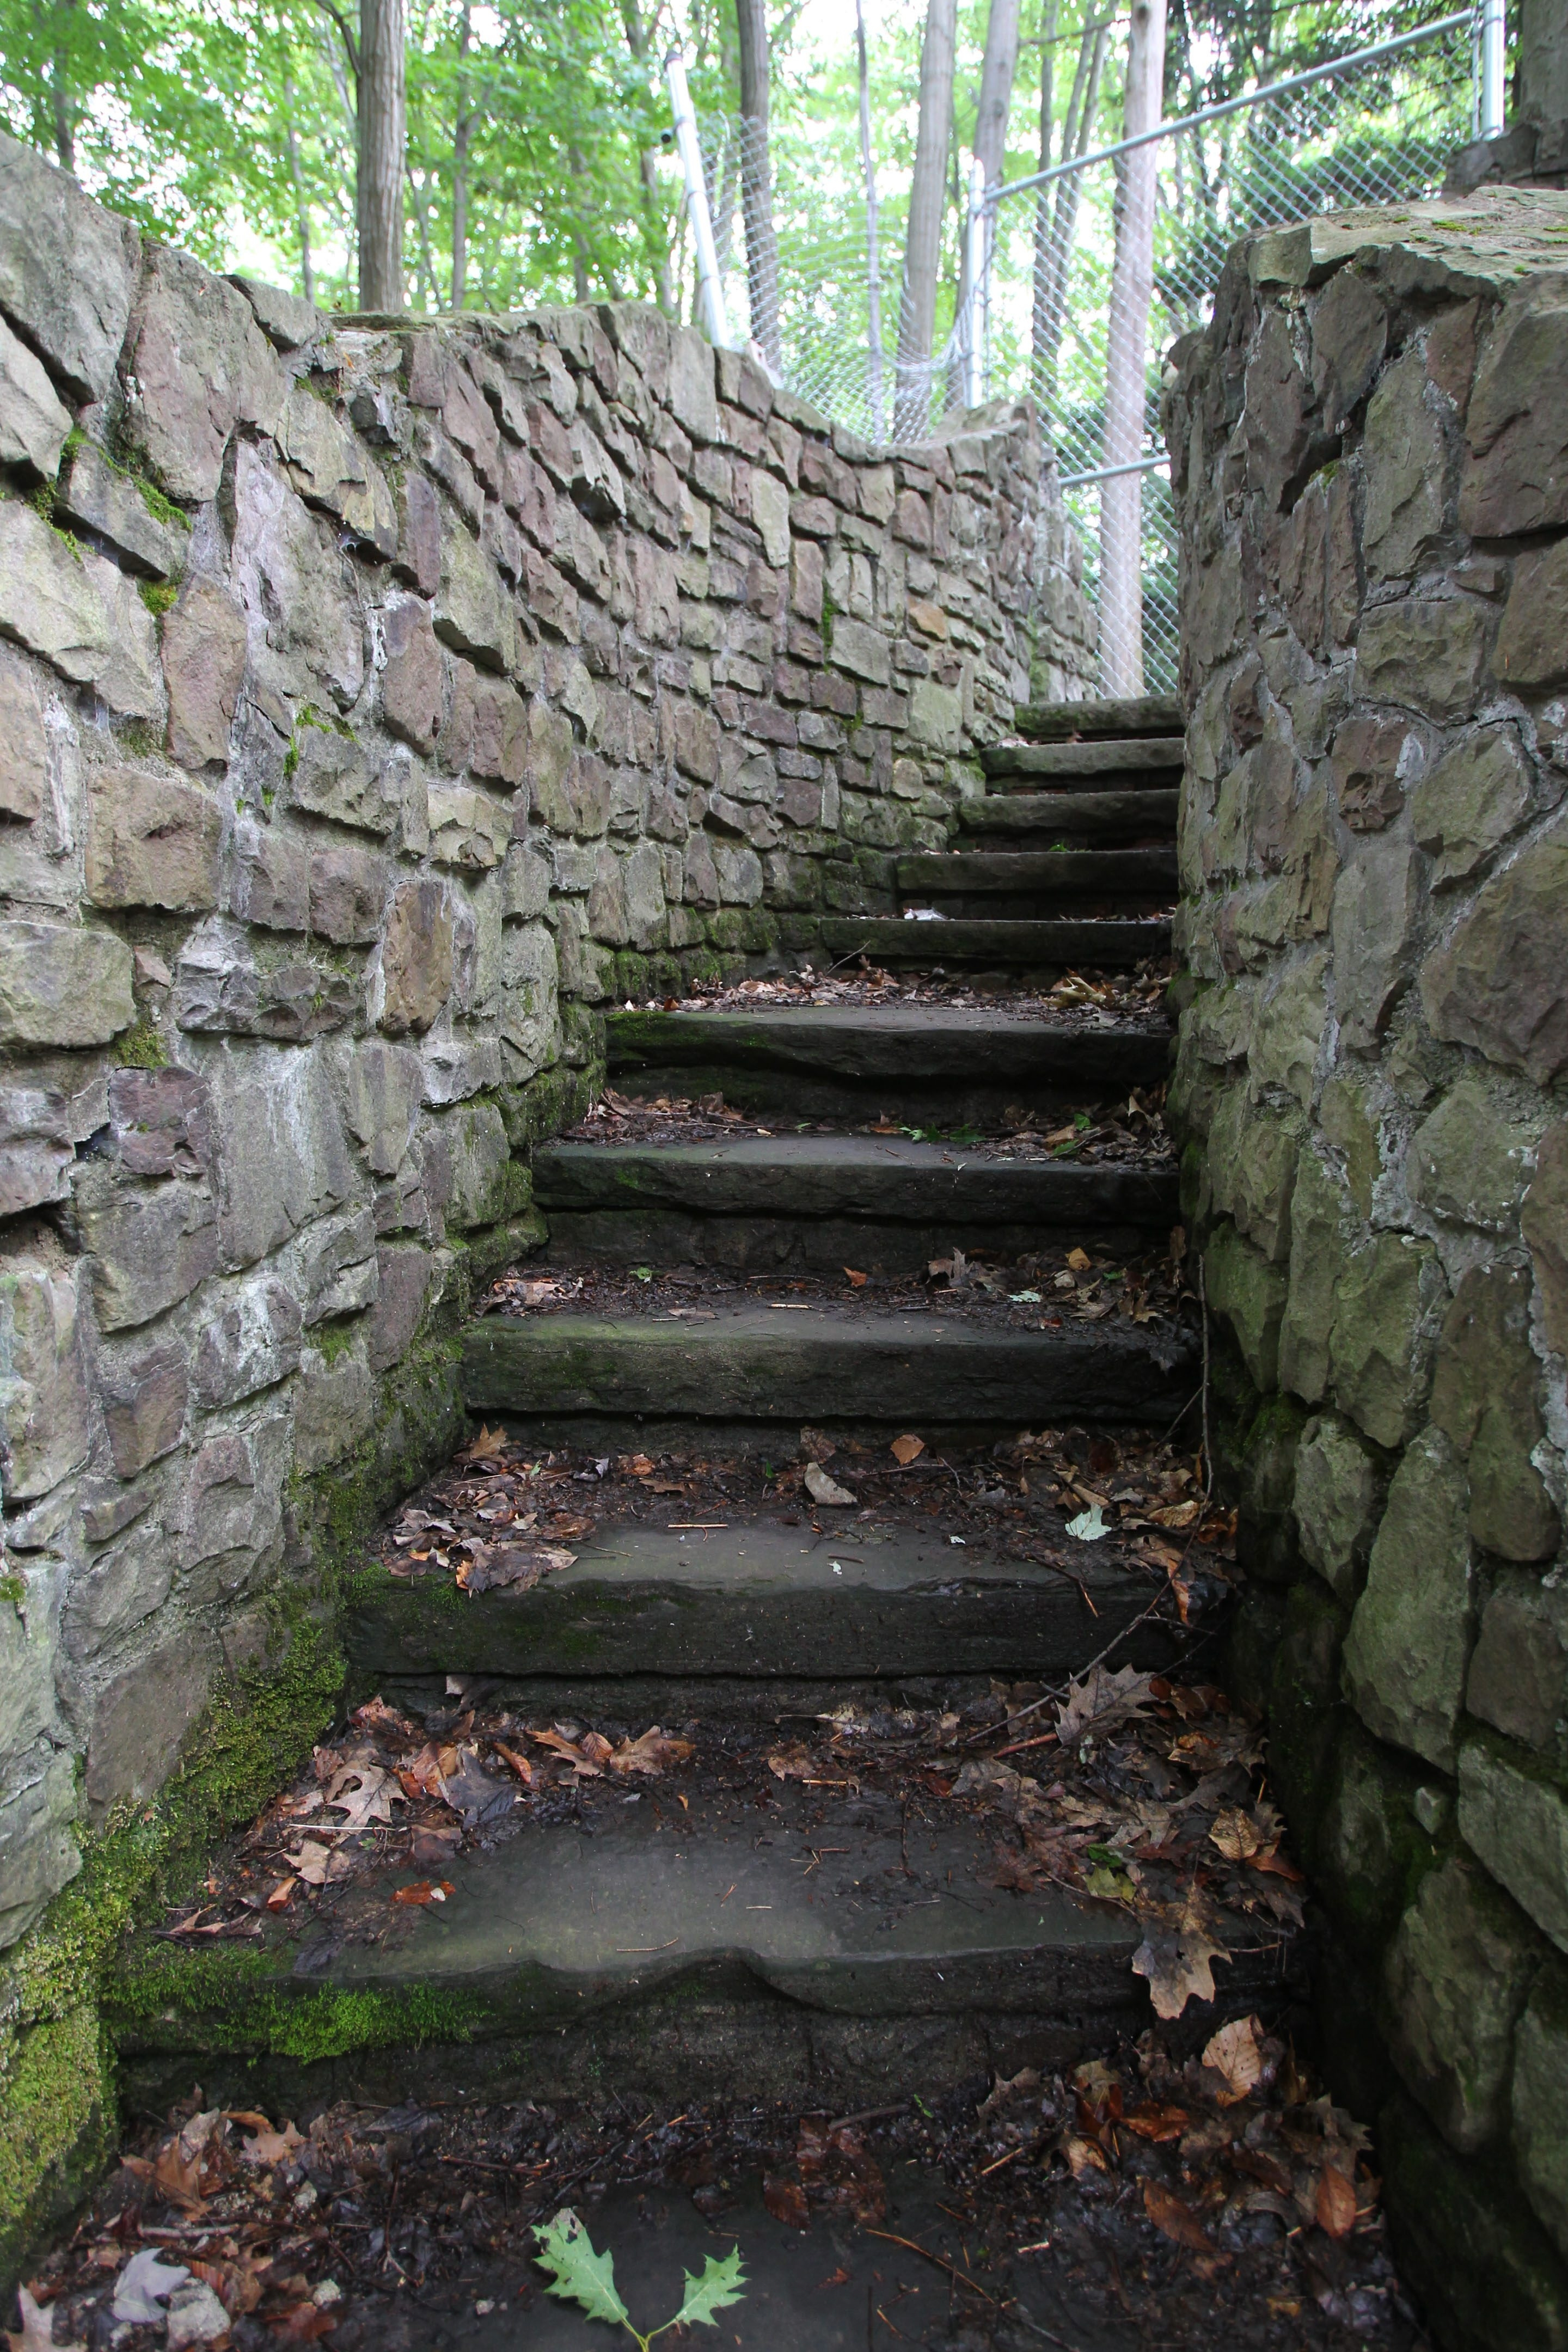 The conservancy's most expensive project at Chestnut Ridge Park is repairing the 100 steps for approximately $2 million.